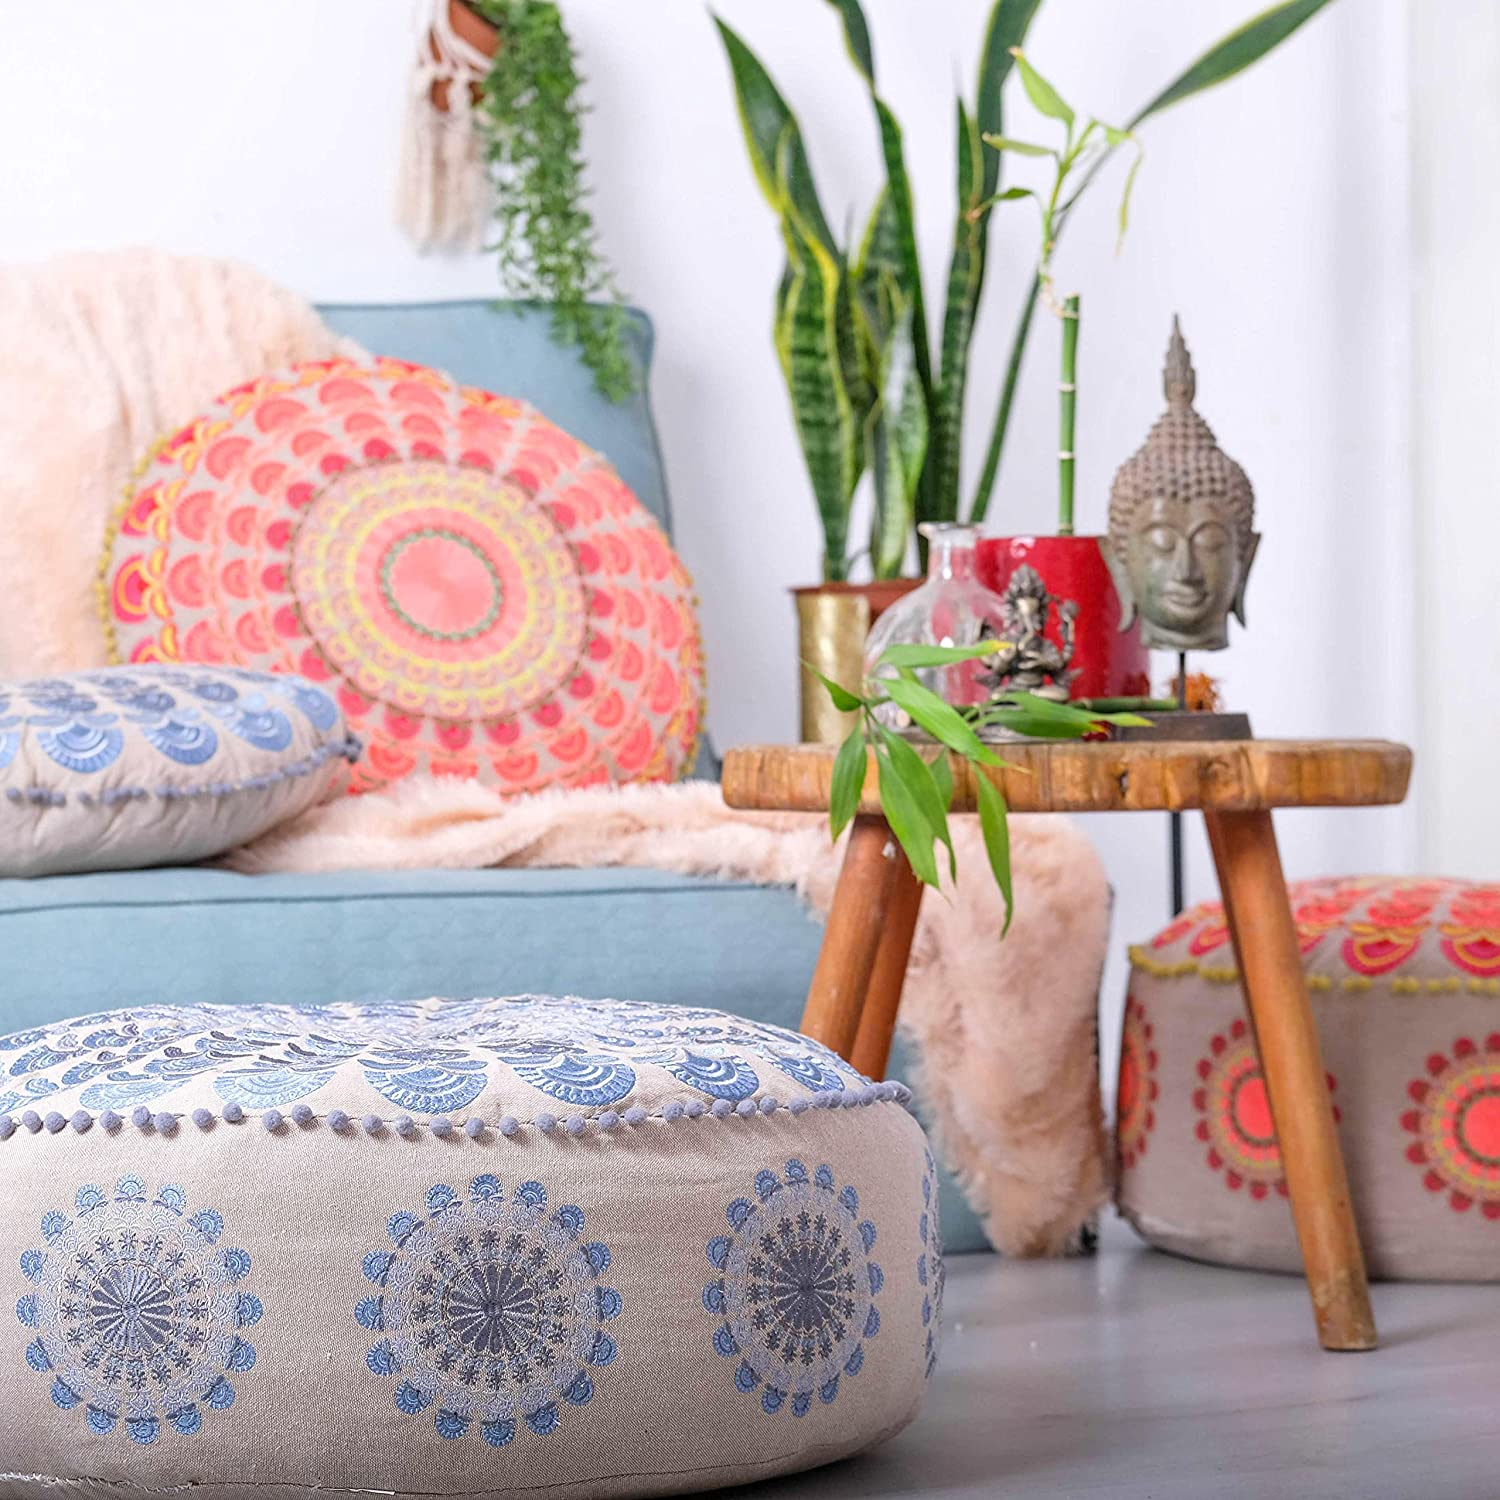 Mandala Life ART Peacock Pouf (Pouf Stuffed 24x8, Blue Embroidery